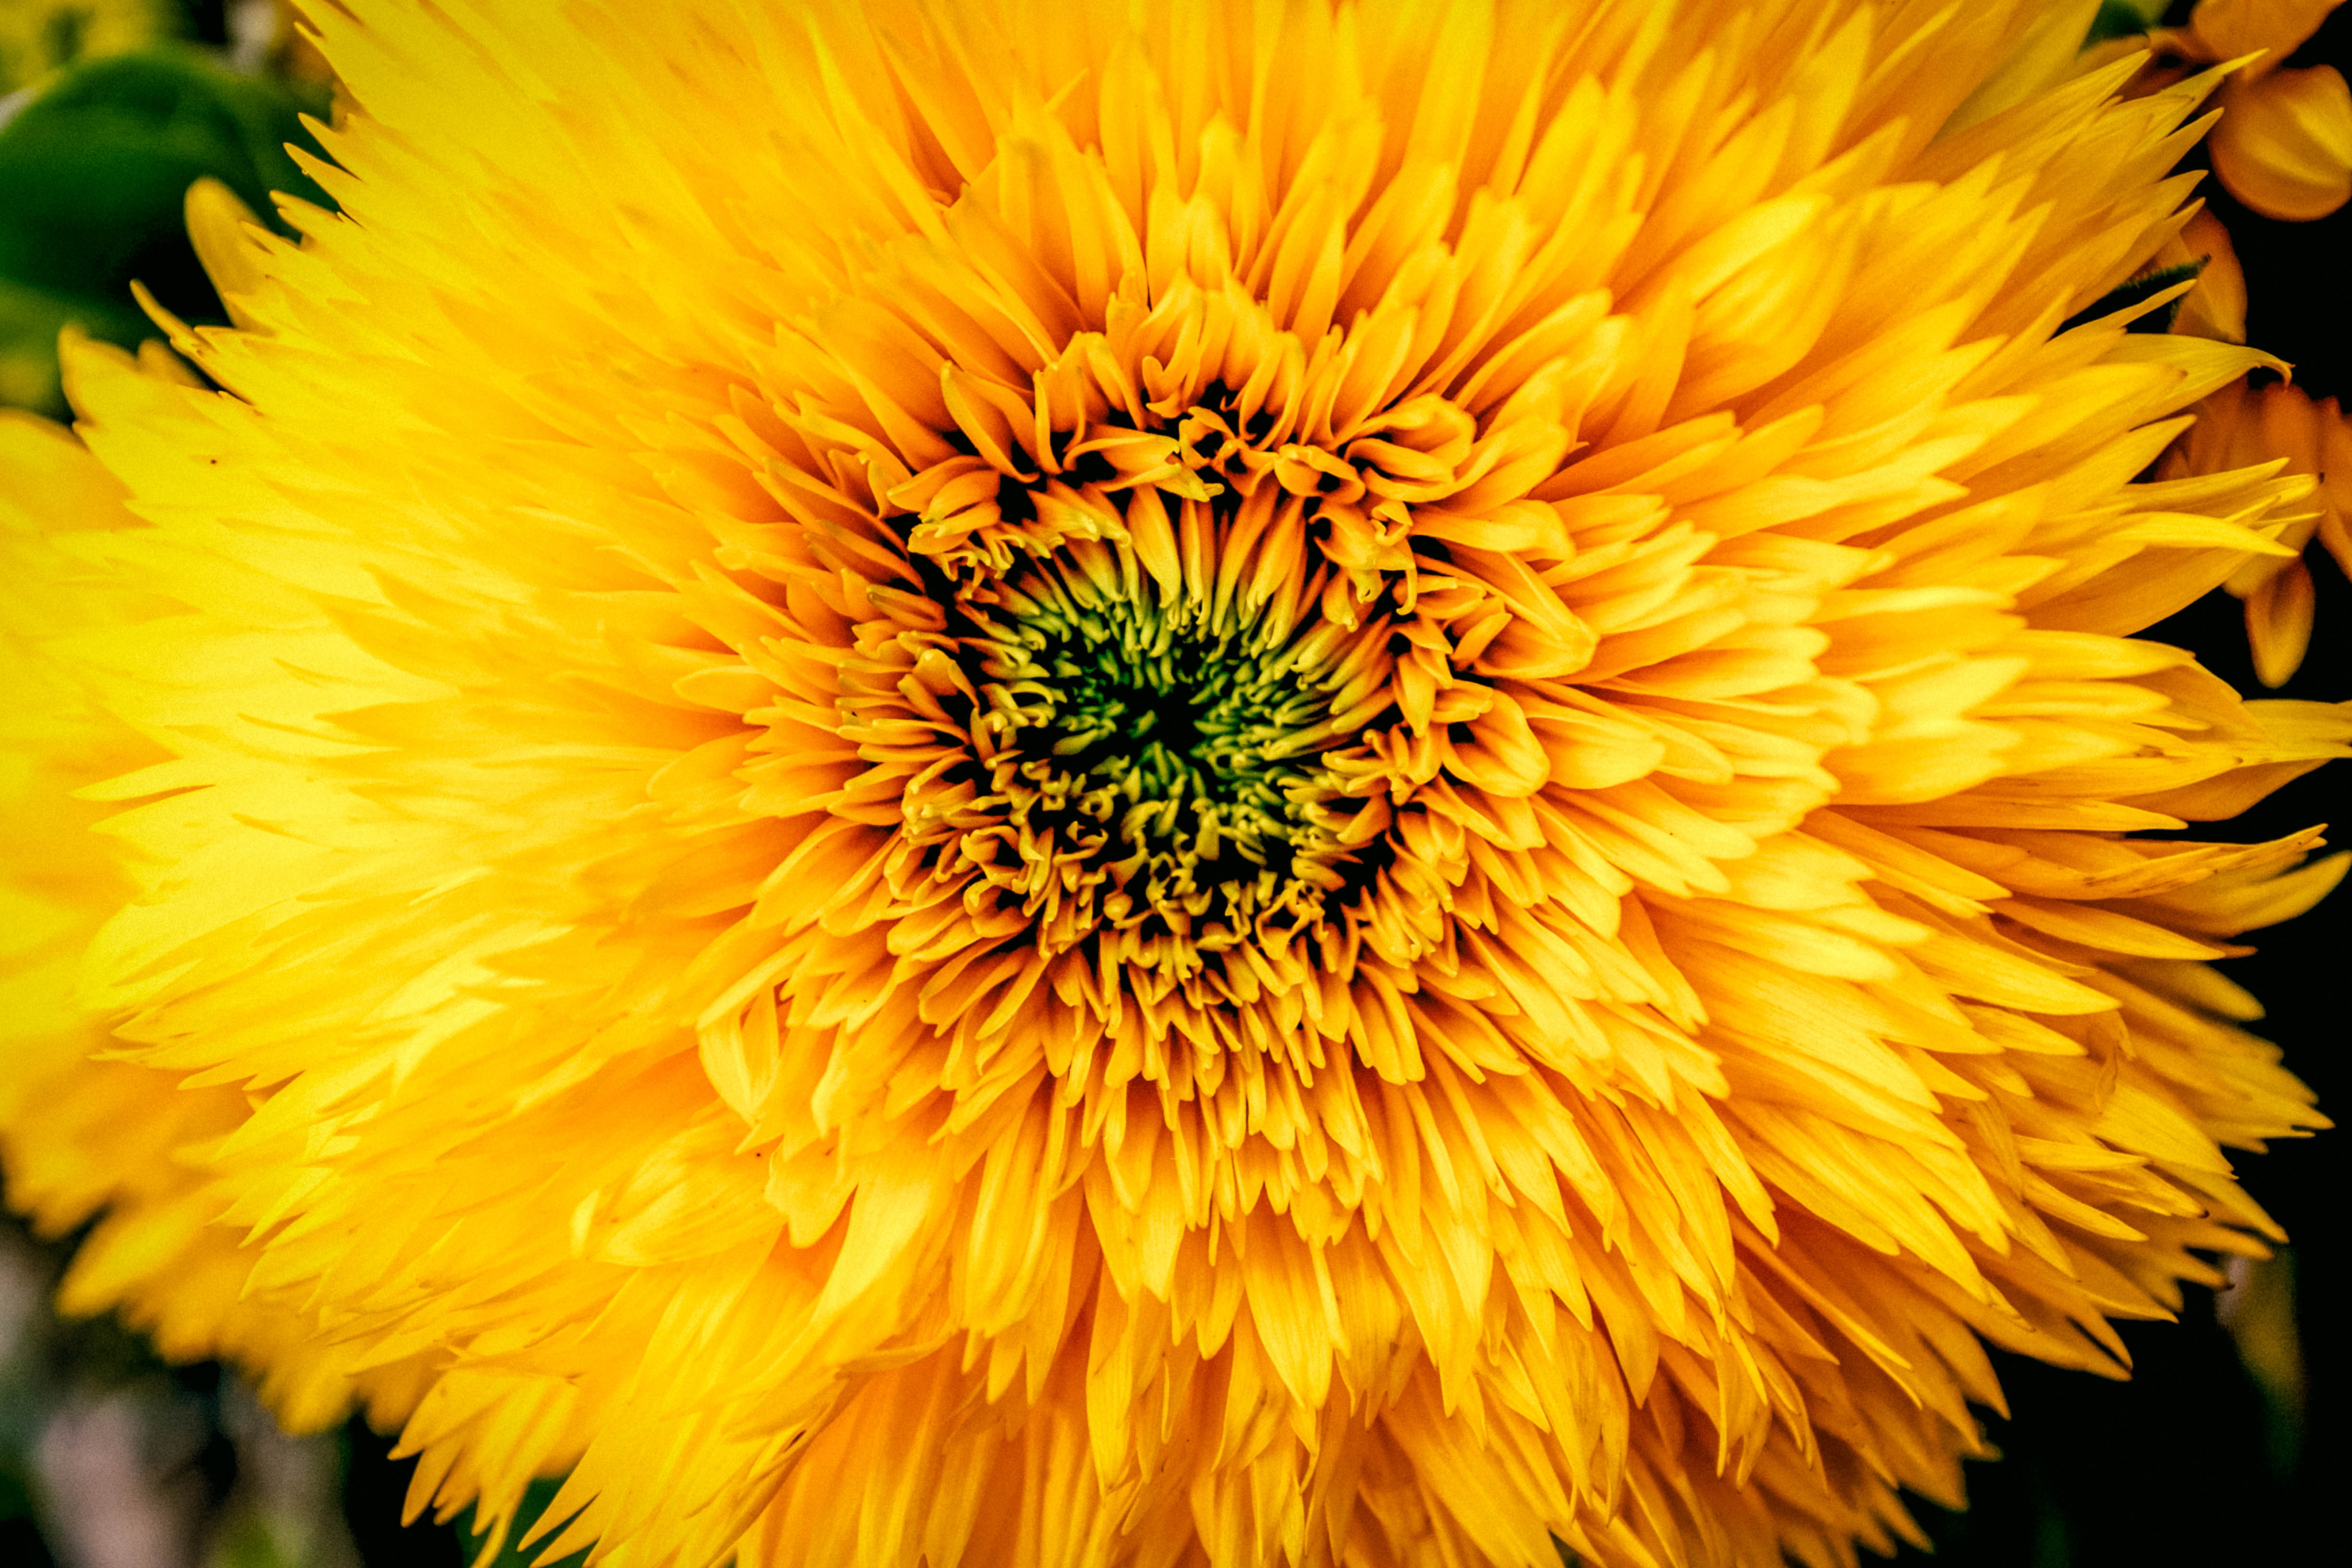 80276 download wallpaper Flowers, Chrysanthemum, Petals, Bud screensavers and pictures for free